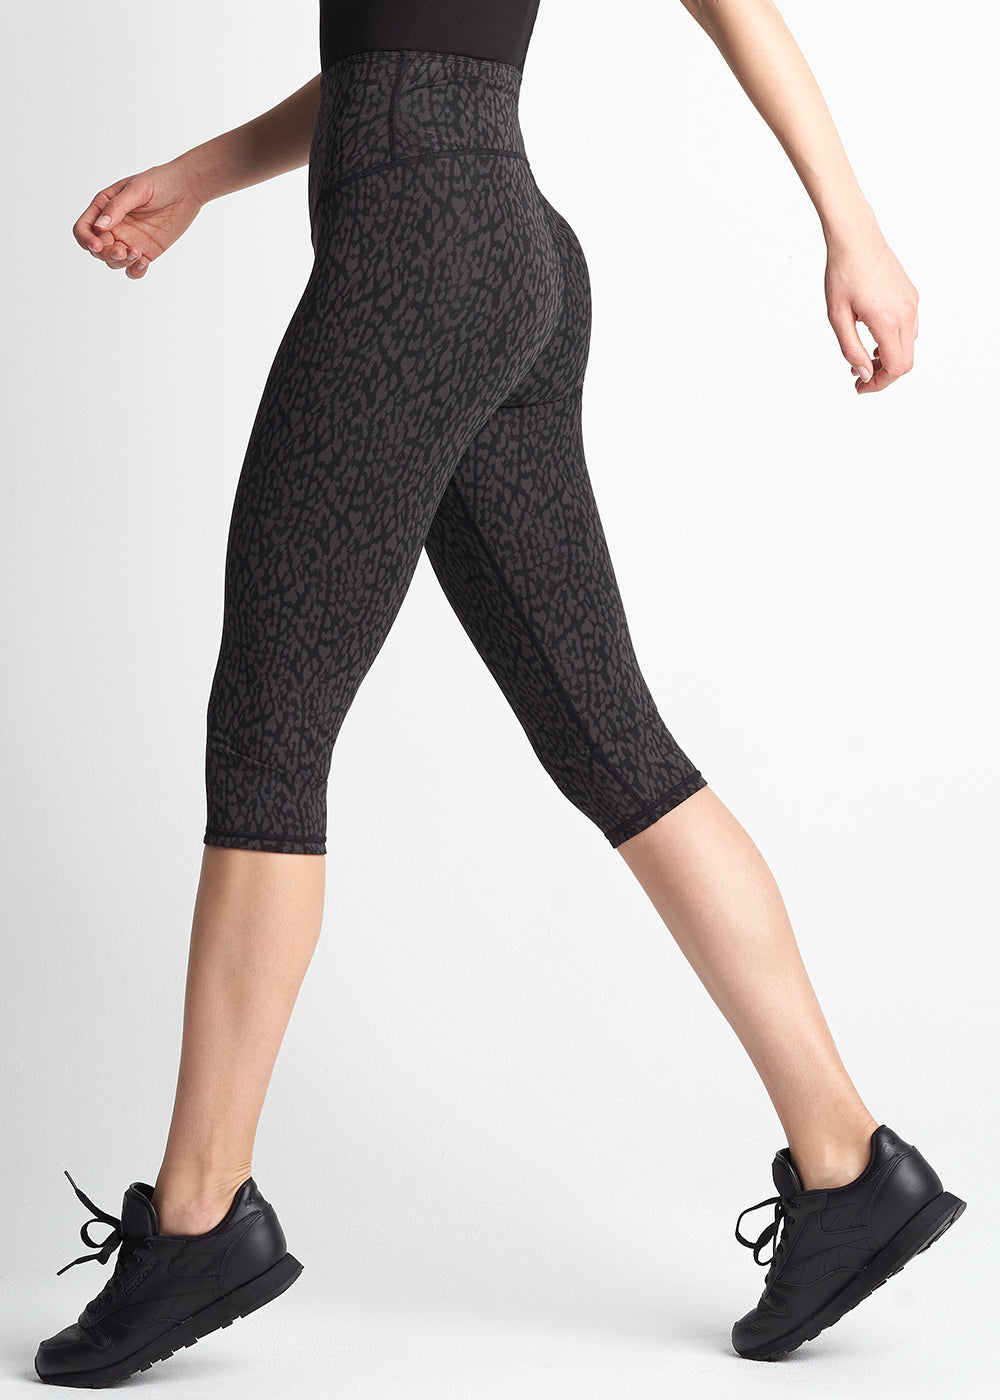 Yummie Talia Reversible Capri Shaping Legging